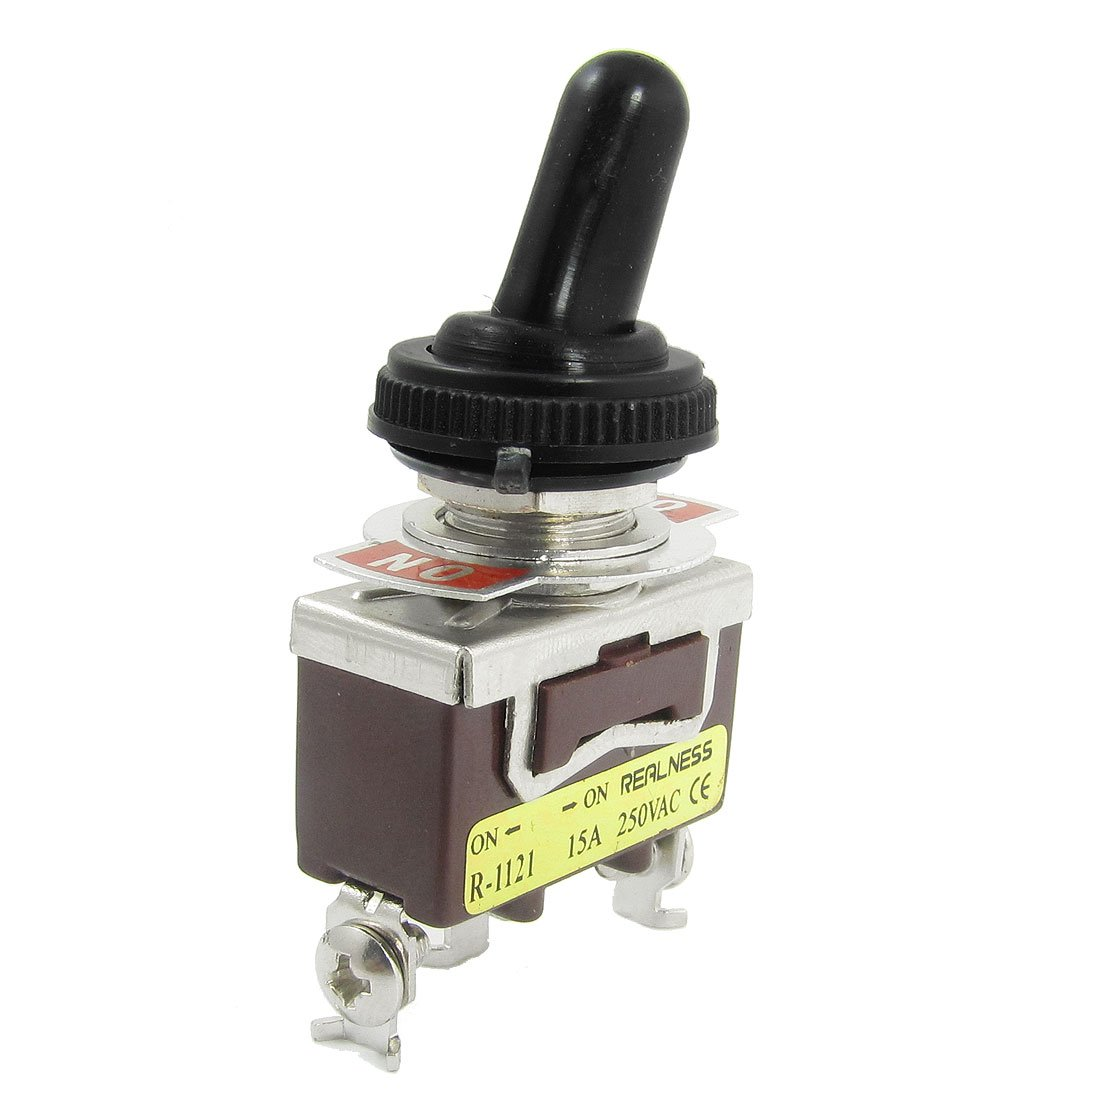 Uxcell On-On 2 Position SPDT 1P2T Latching Toggle Switch, 15 Amp/250V AC a12040900ux0621